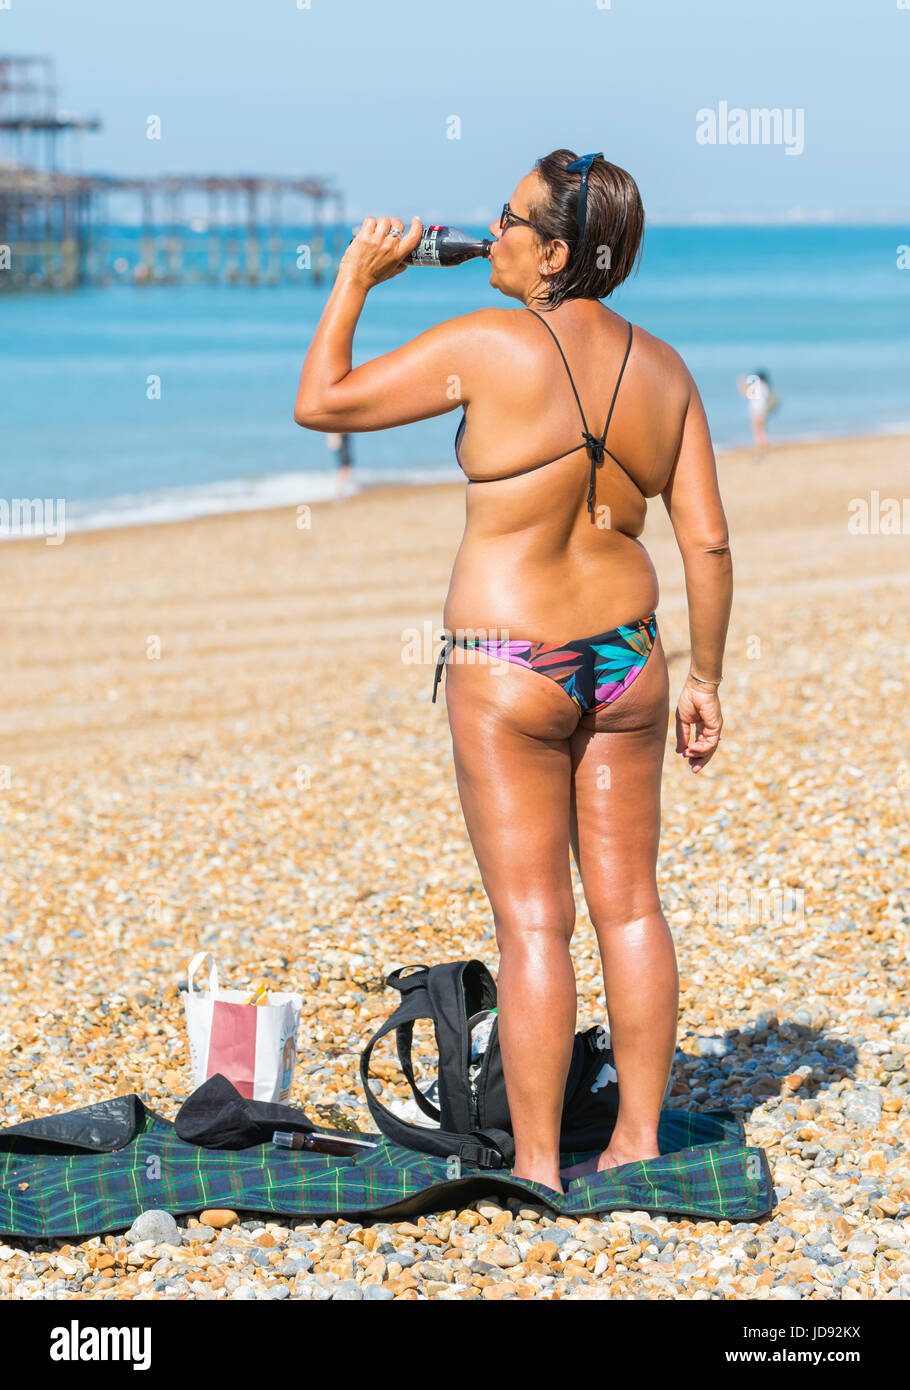 summer-concept-summer-drink-very-tanned-woman-in-bikini-having-a-drink-JD92KX.jpg